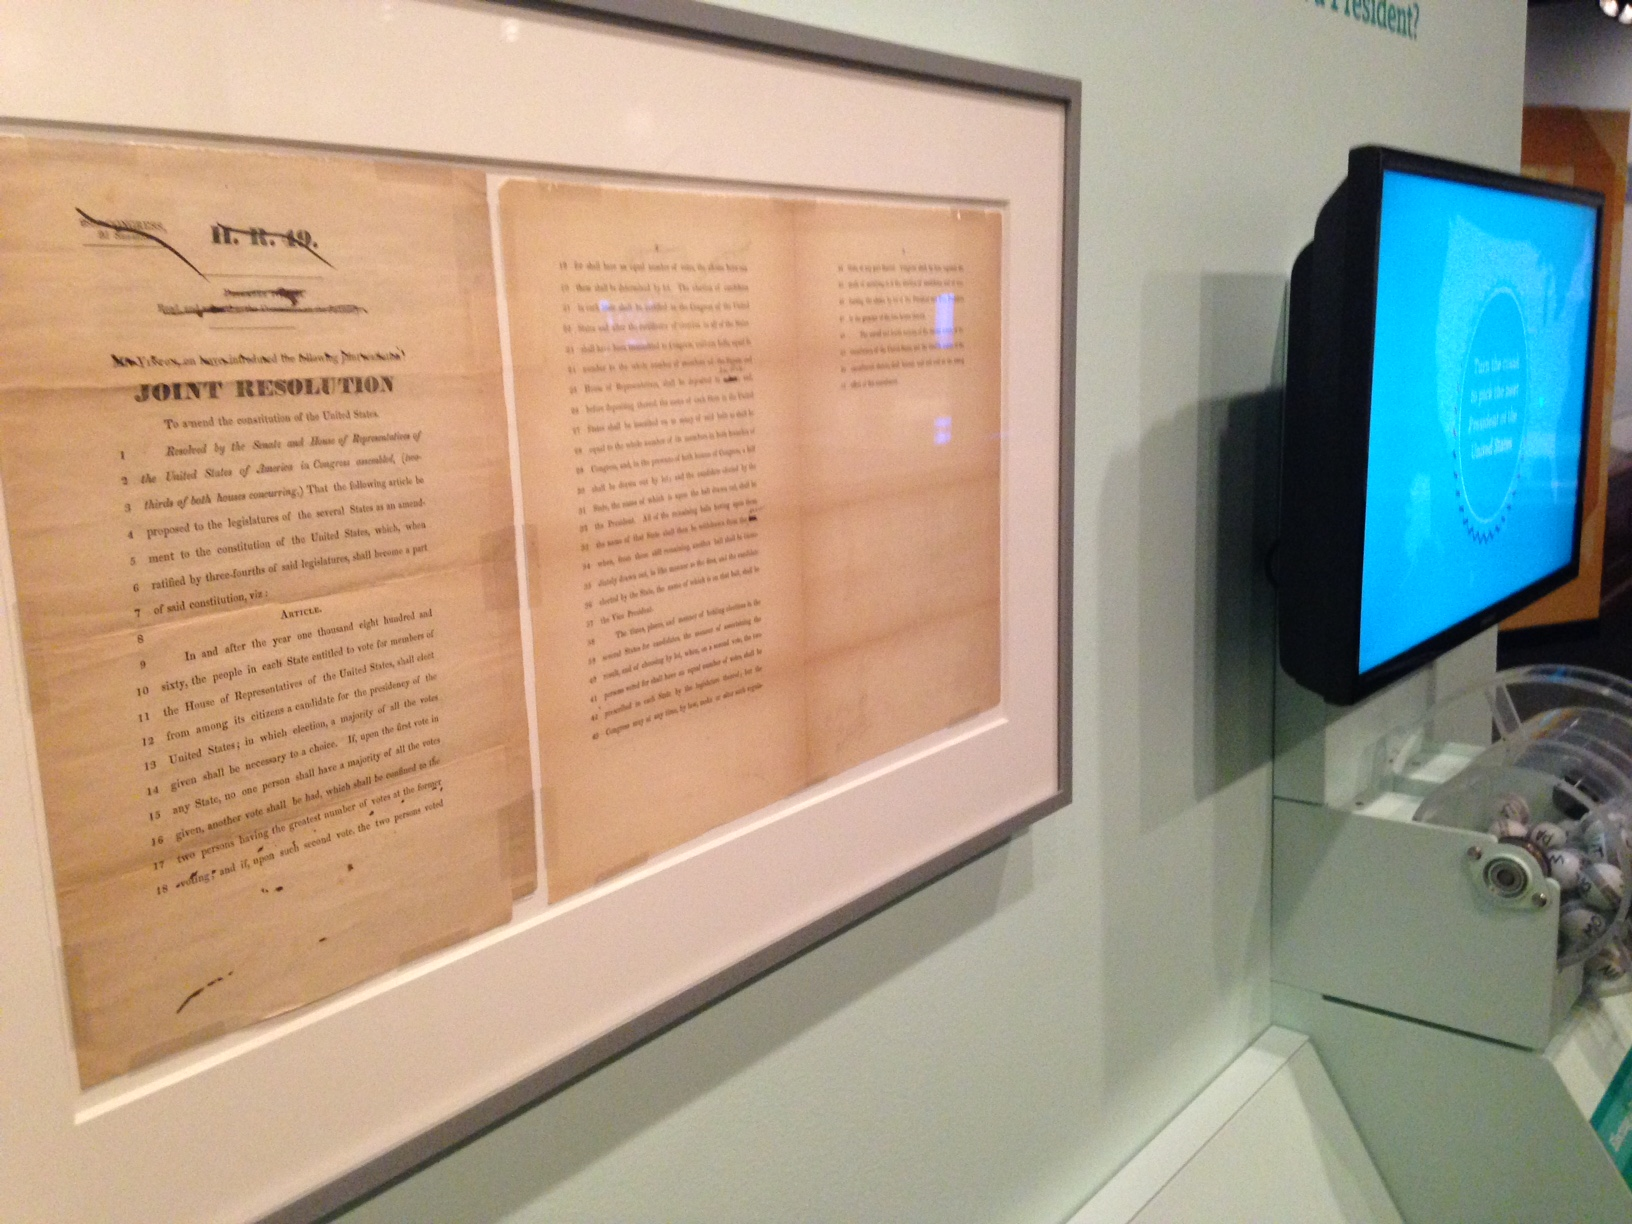 National Archives exhibit shows 11,000 ways the Constitution could have changed